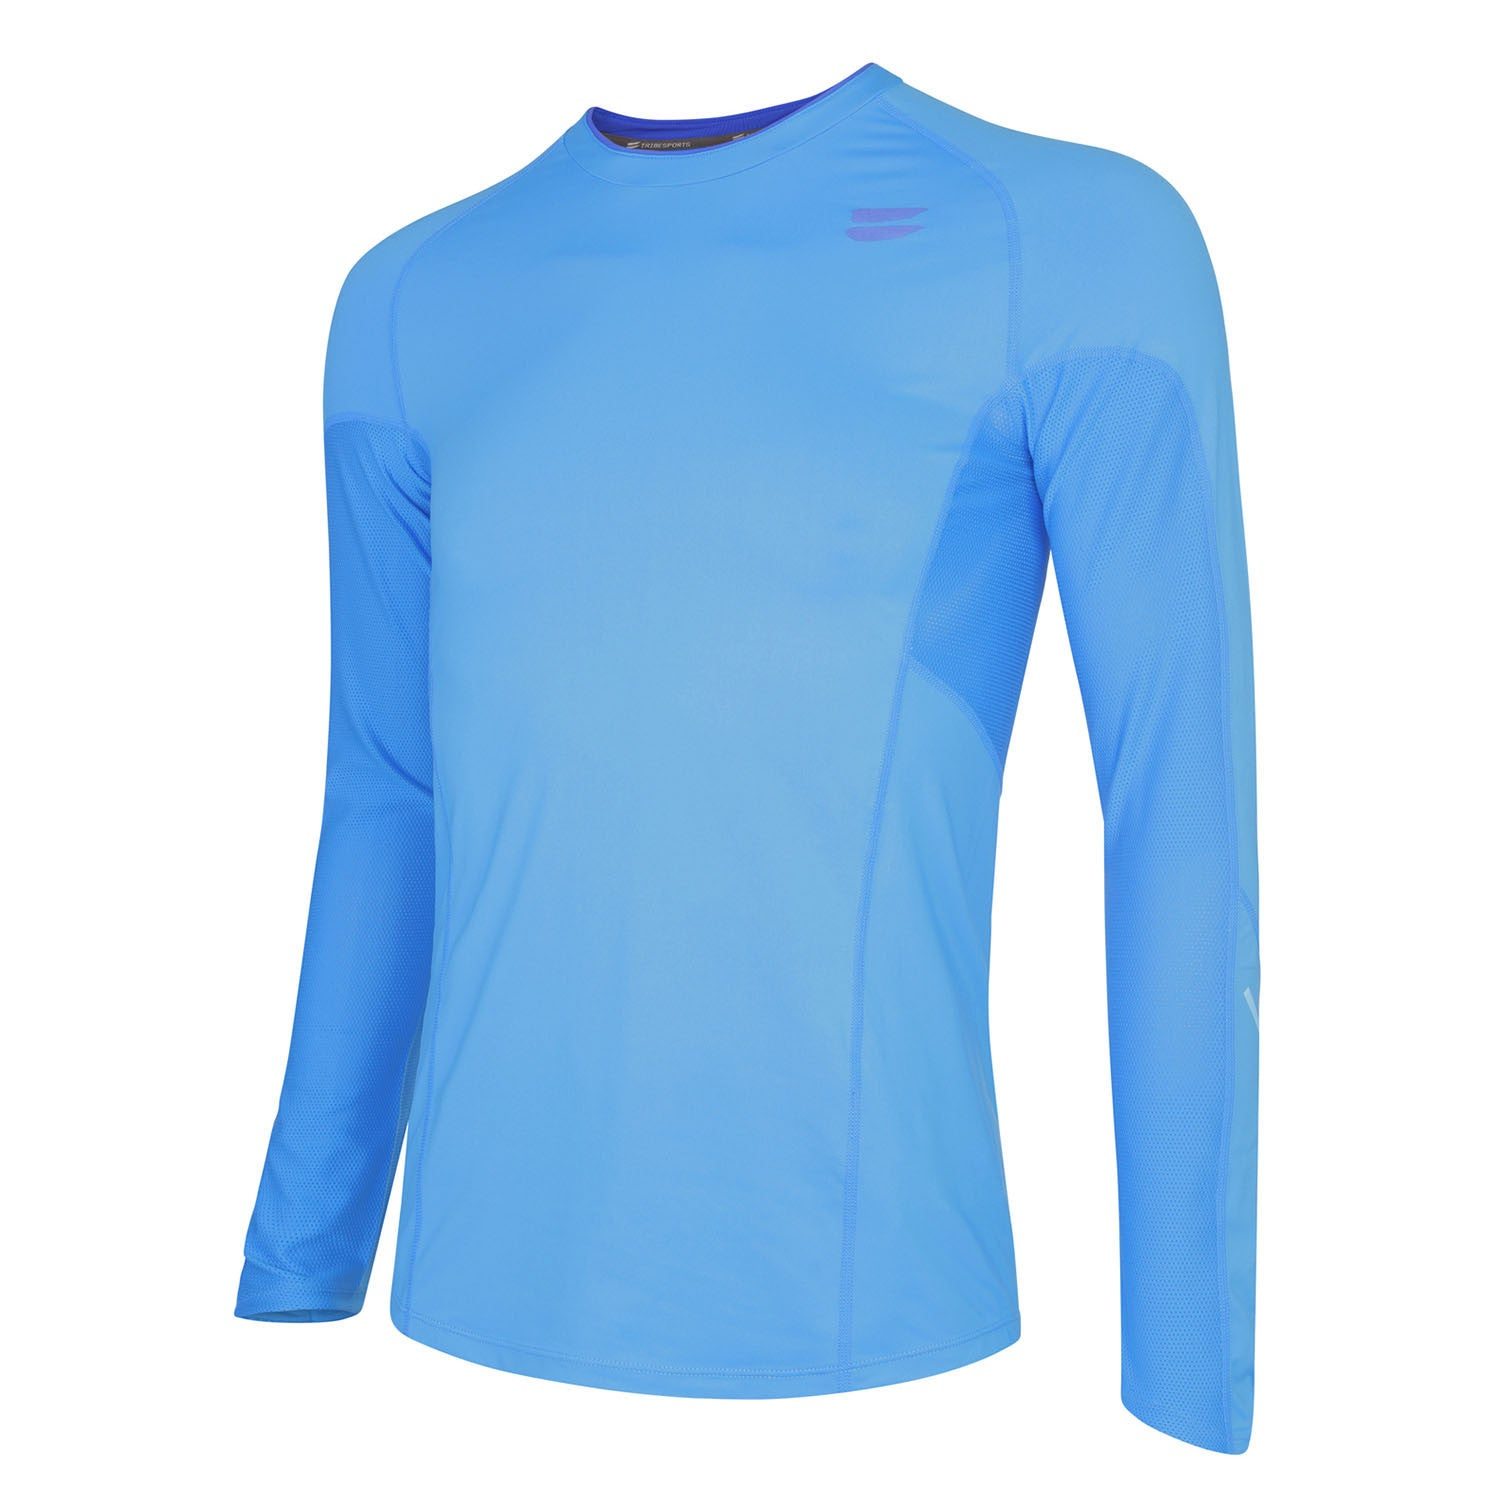 Men's Core Long Sleeve Running Top